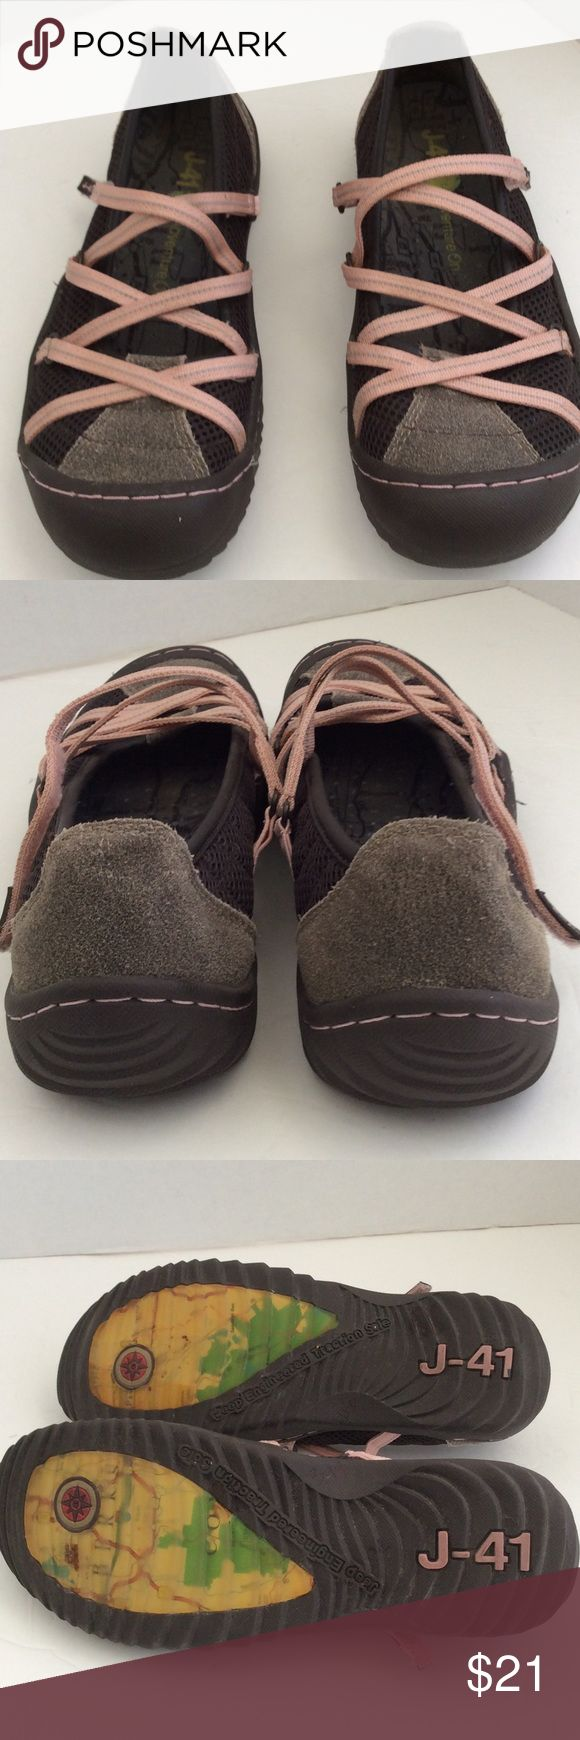 "Women's J-41 outdoor adventure shoe size 7 J-41 outdoor shoe with ""Jeep engineered traction"" are super comfy and stylish, gently used in great condition, with lots of miles left J-41 Shoes Flats & Loafers"